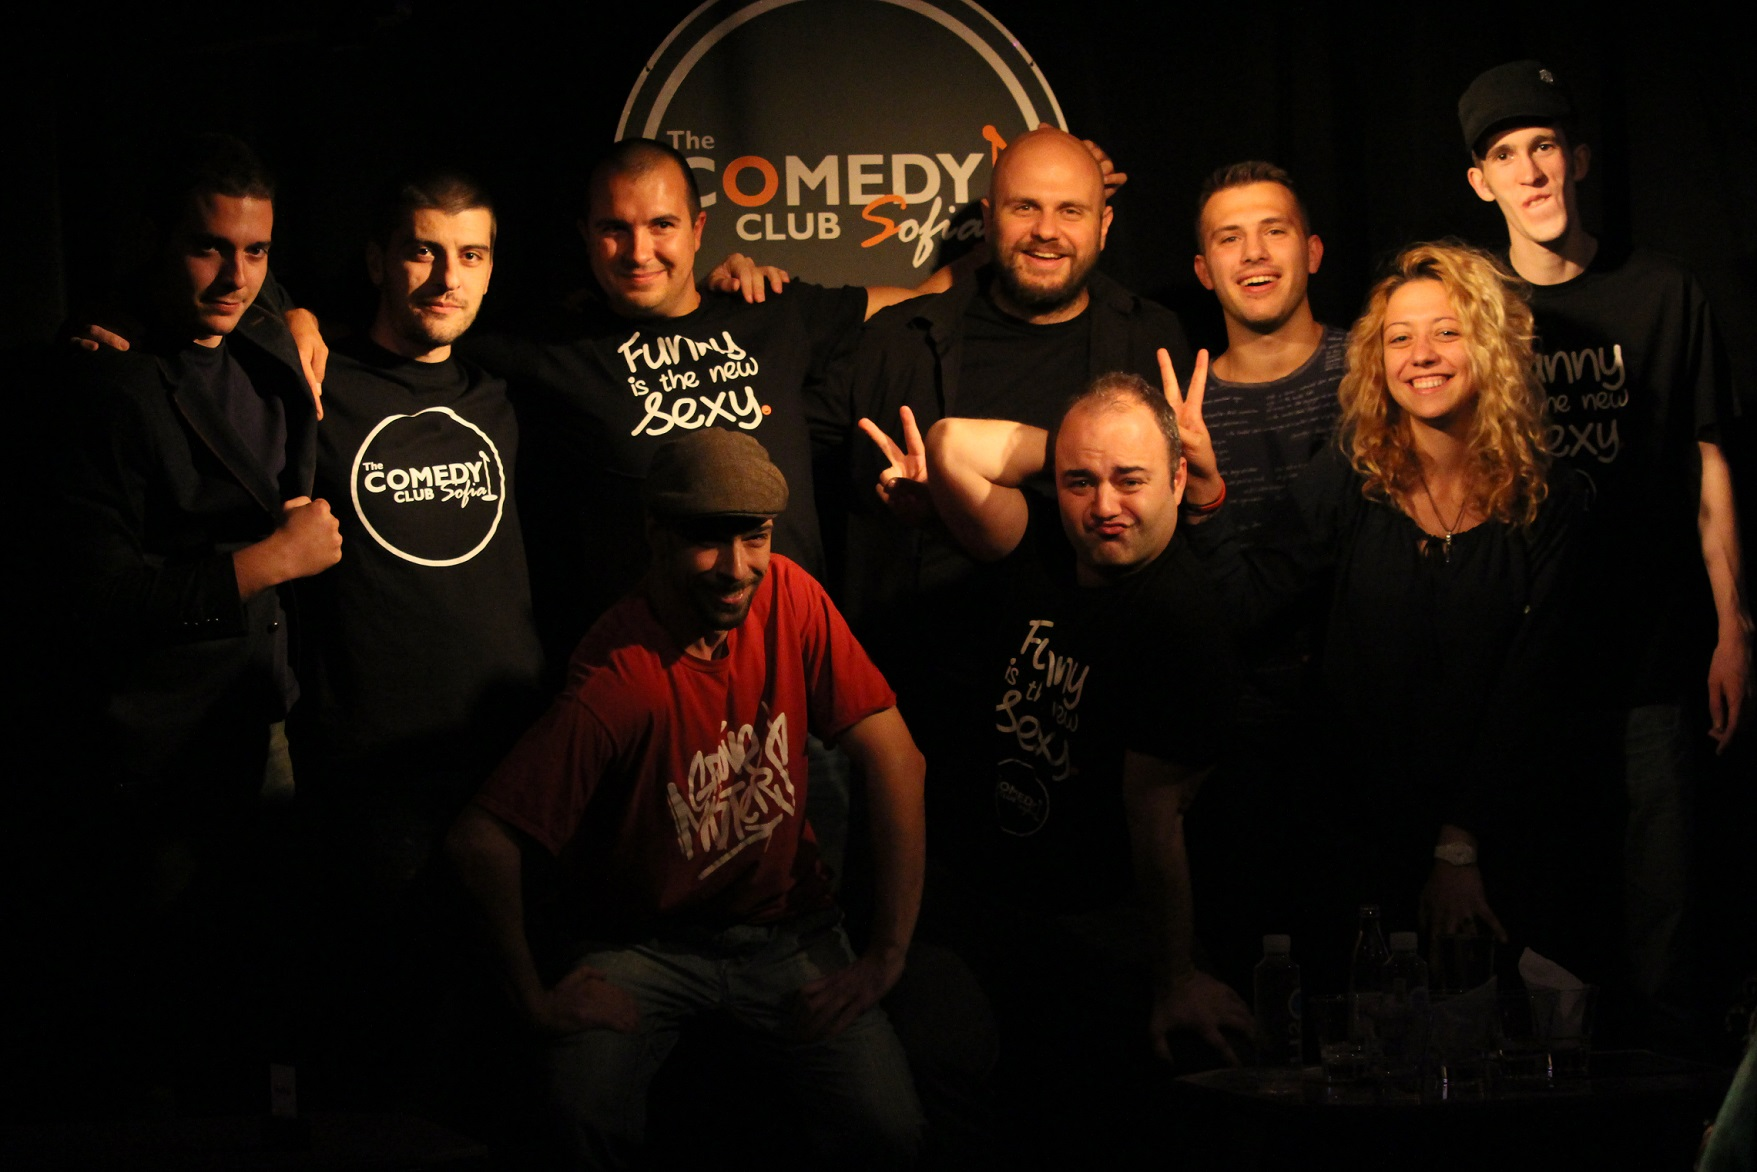 the comedy club sofia